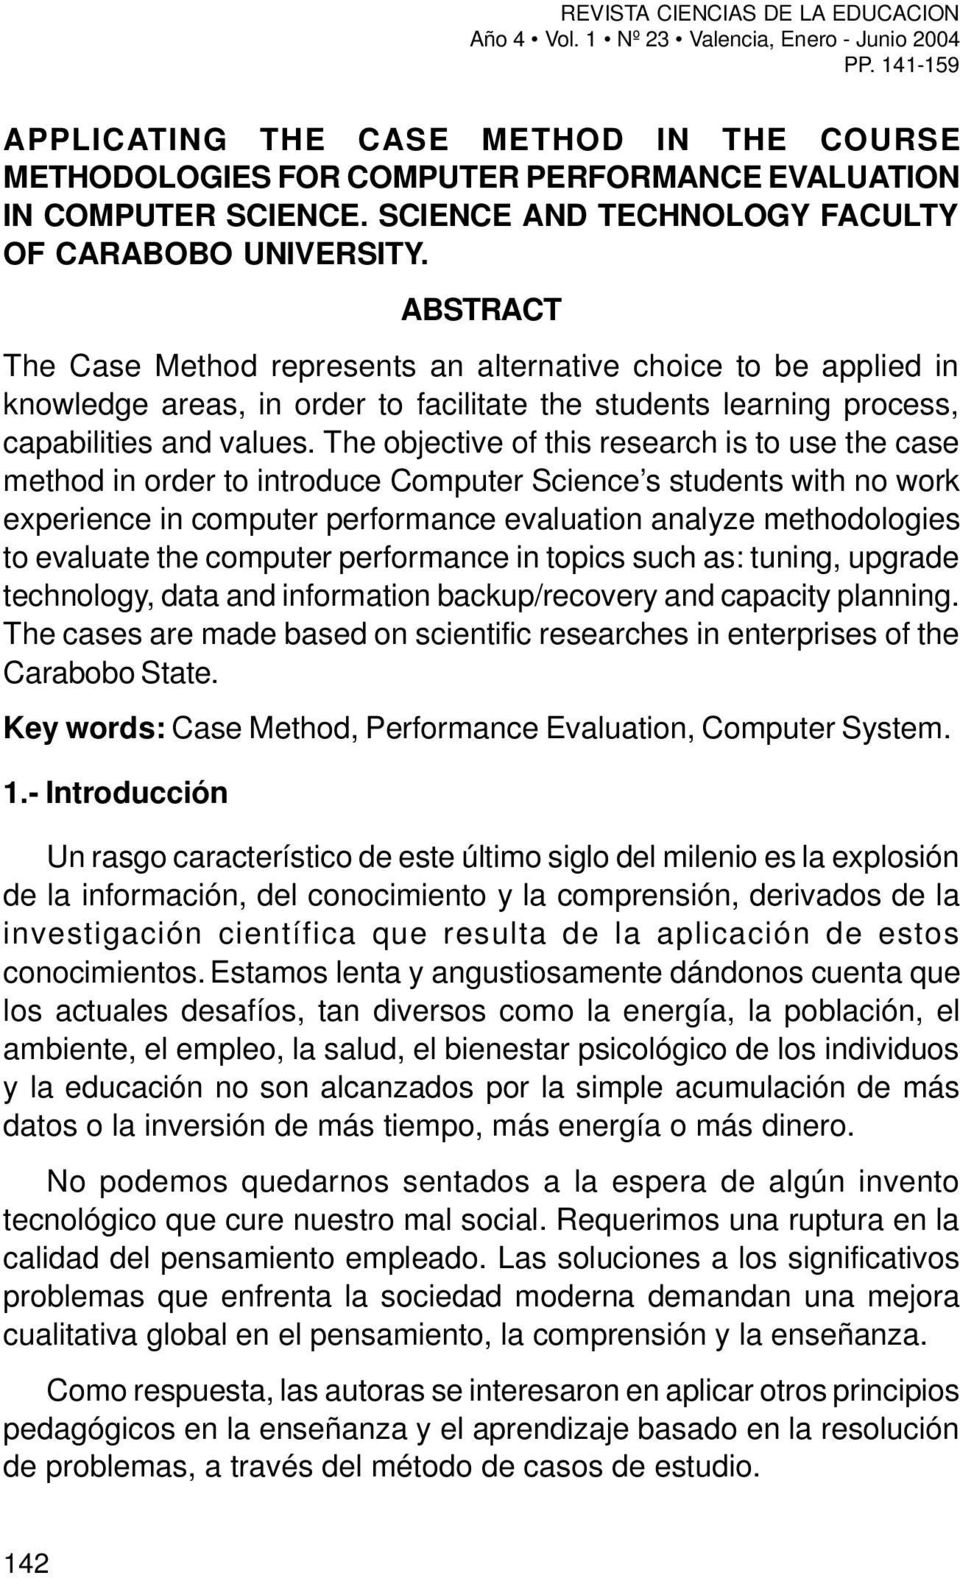 ABSTRACT The Case Method represents an alternative choice to be applied in knowledge areas, in order to facilitate the students learning process, capabilities and values.